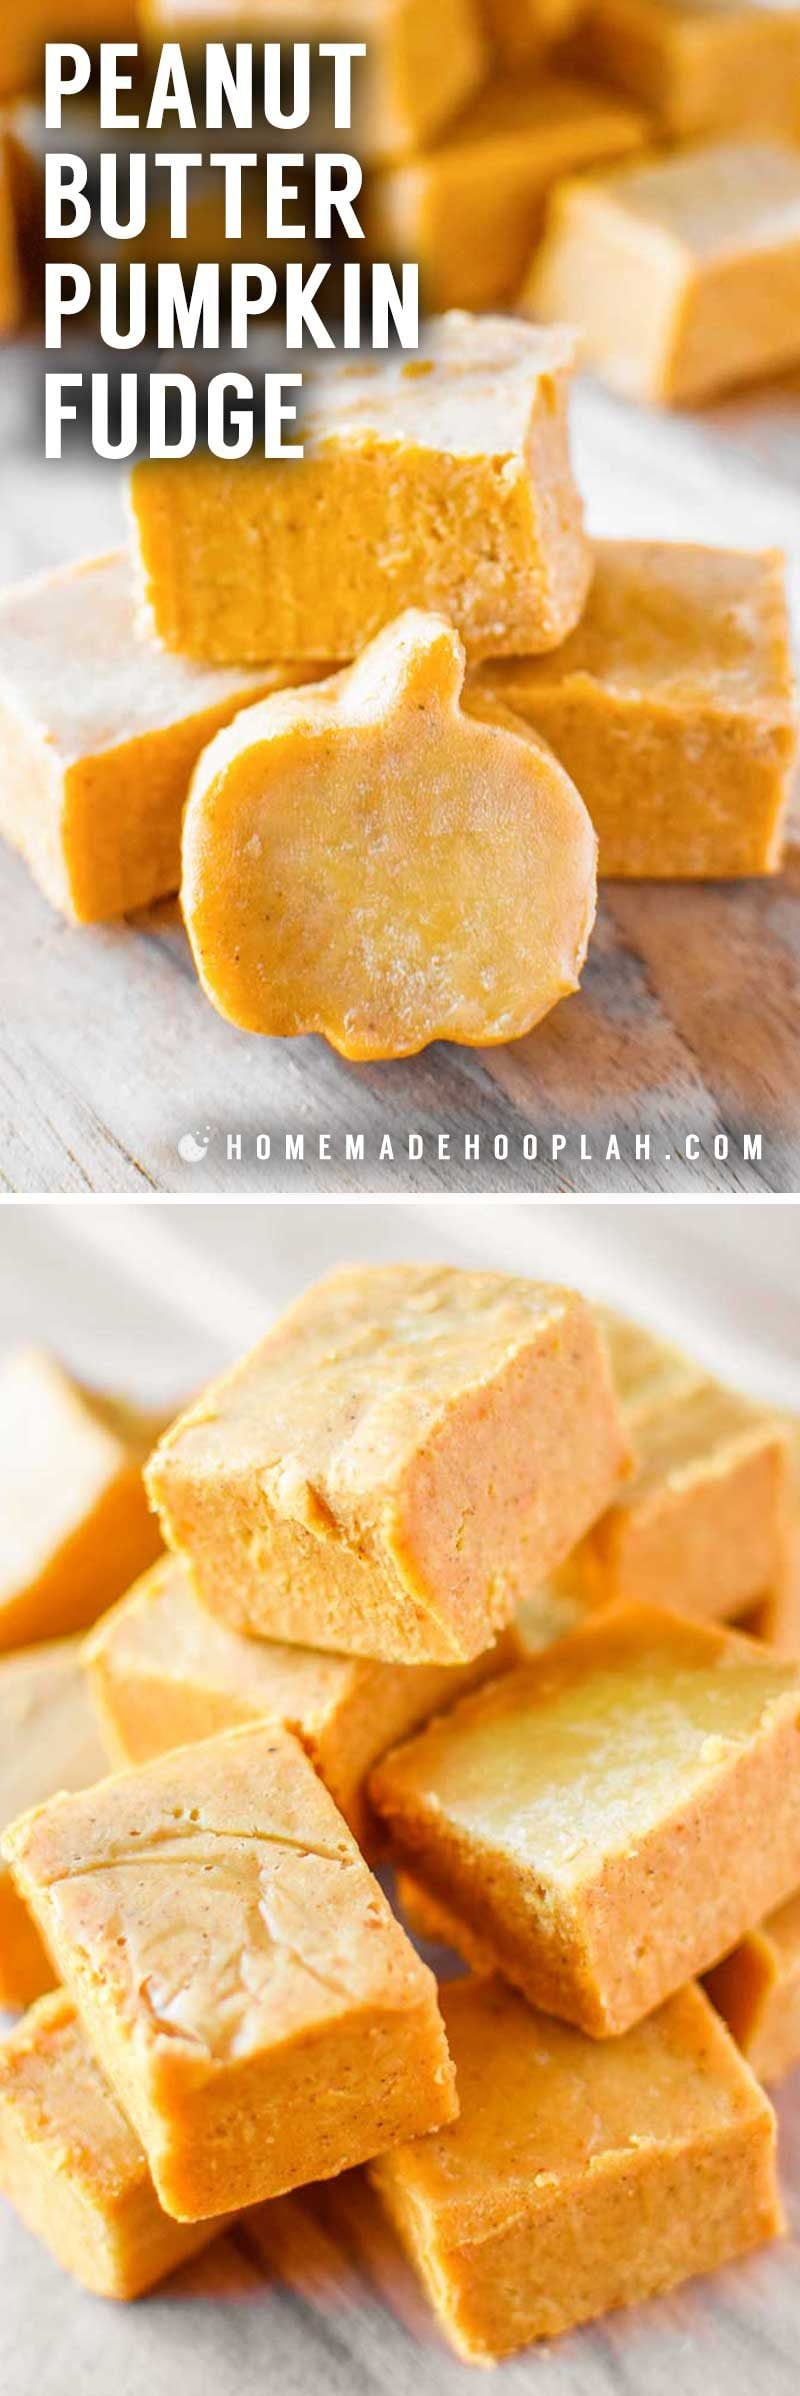 Peanut Butter Pumpkin Fudge! Creamy peanut butter fudge laced with white chocolate and festive pumpkin that you can whip together in less than 10 minutes! | HomemadeHooplah.com